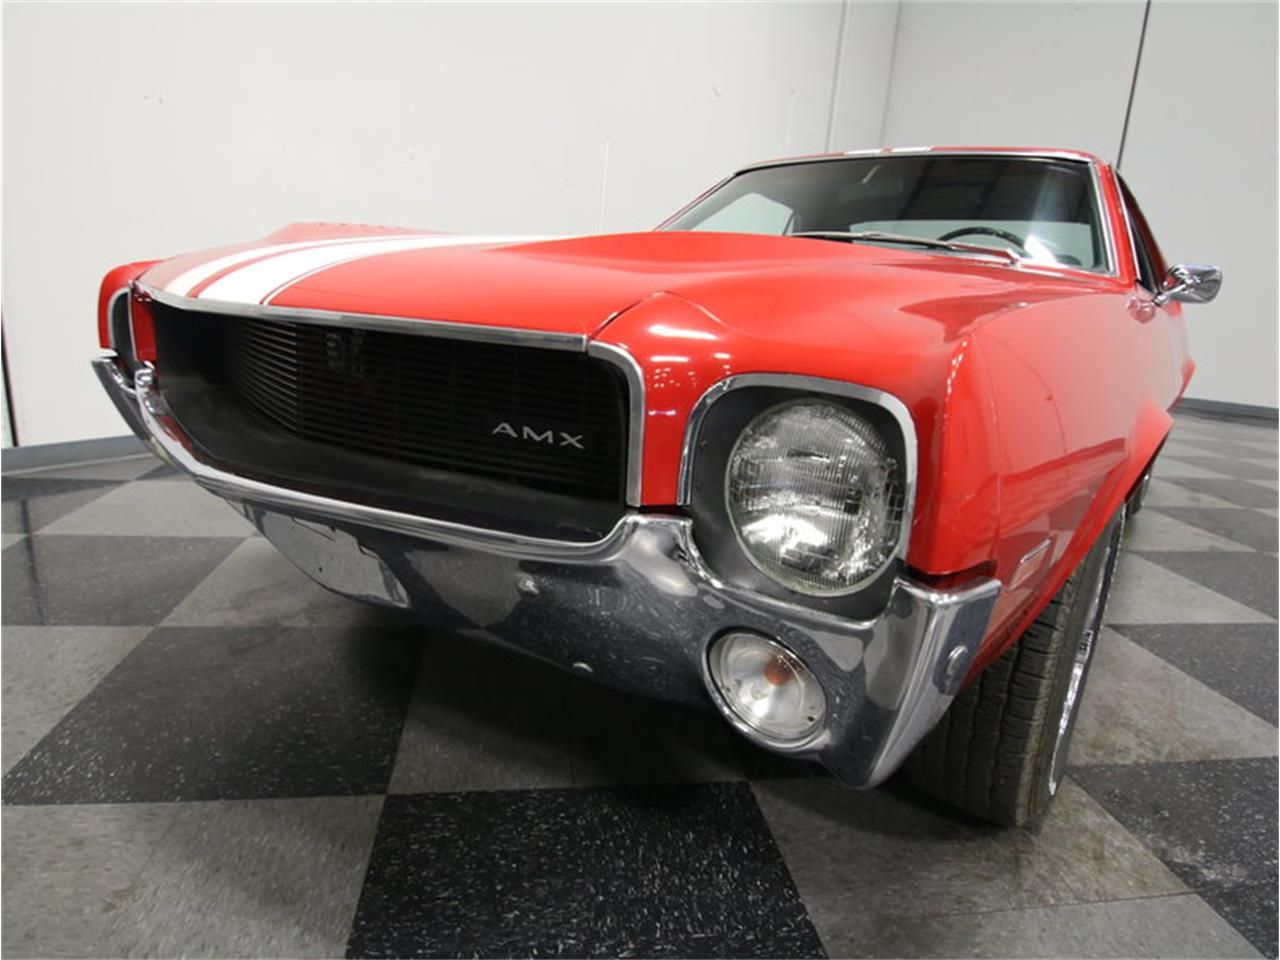 Large Picture of Classic '68 AMX located in Georgia Offered by Streetside Classics - Atlanta - KIU4